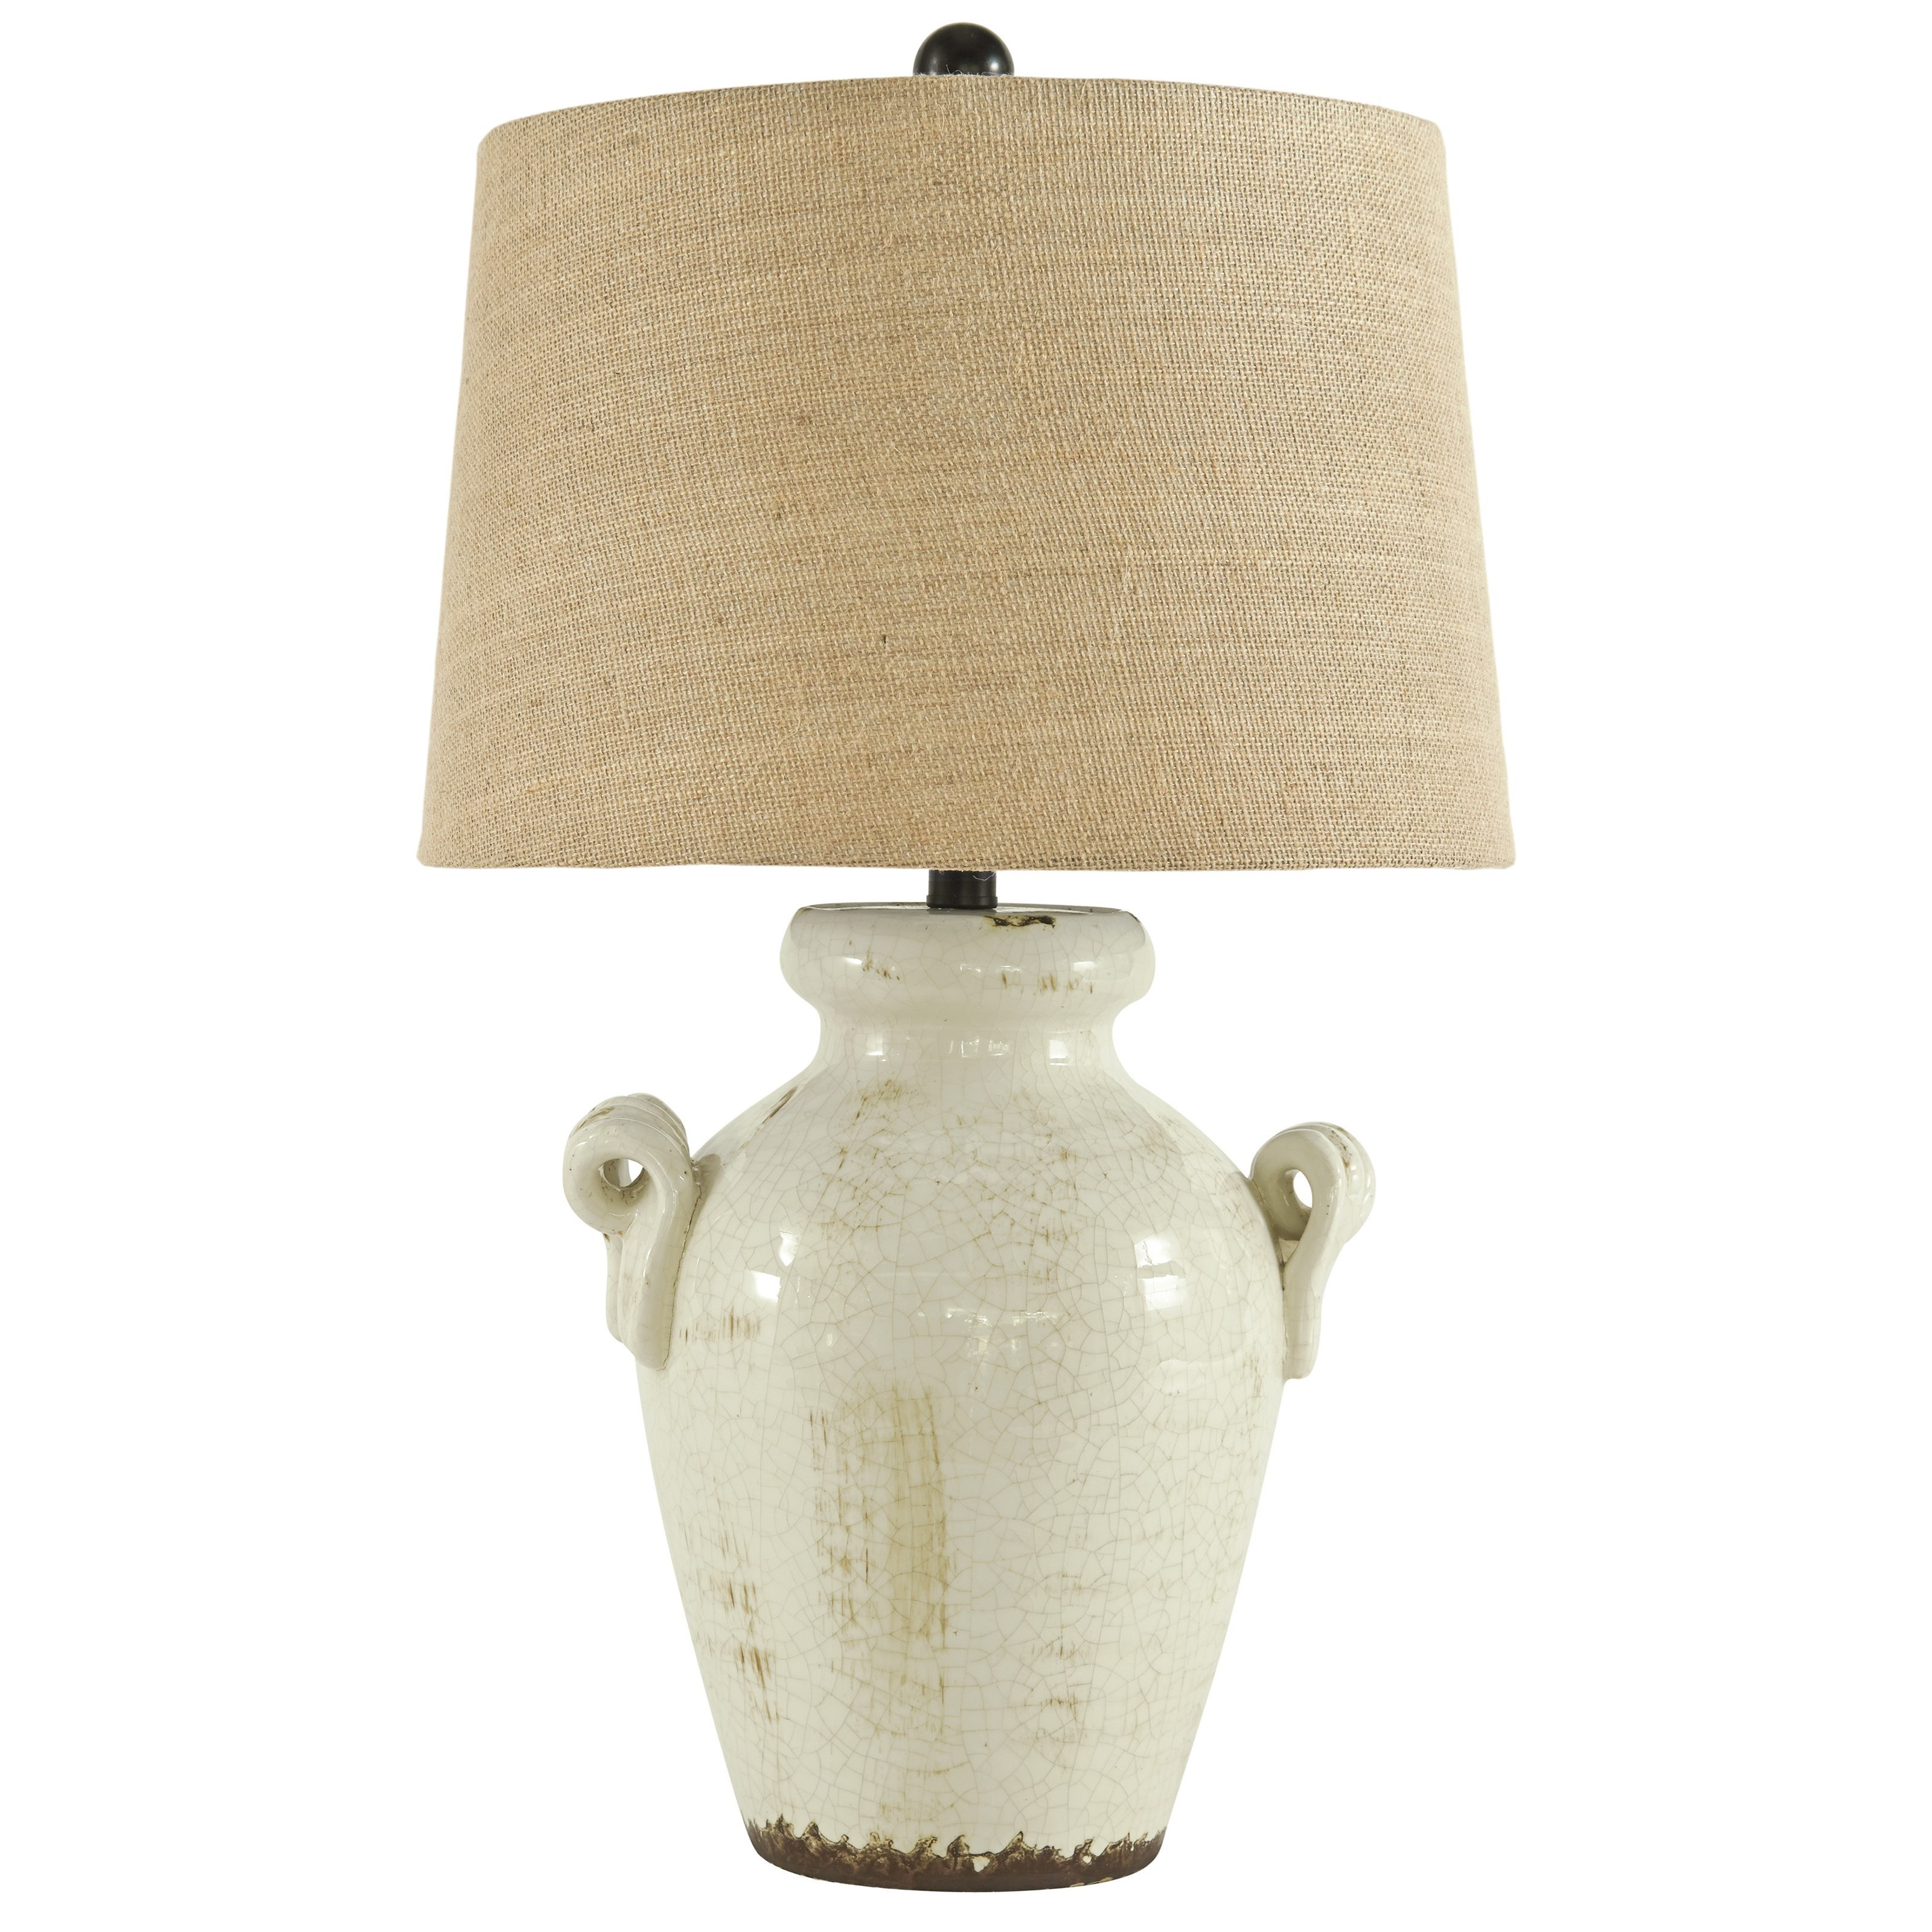 Lamps - Vintage Style Emelda Cream Ceramic Table Lamp by Signature Design by Ashley at Northeast Factory Direct